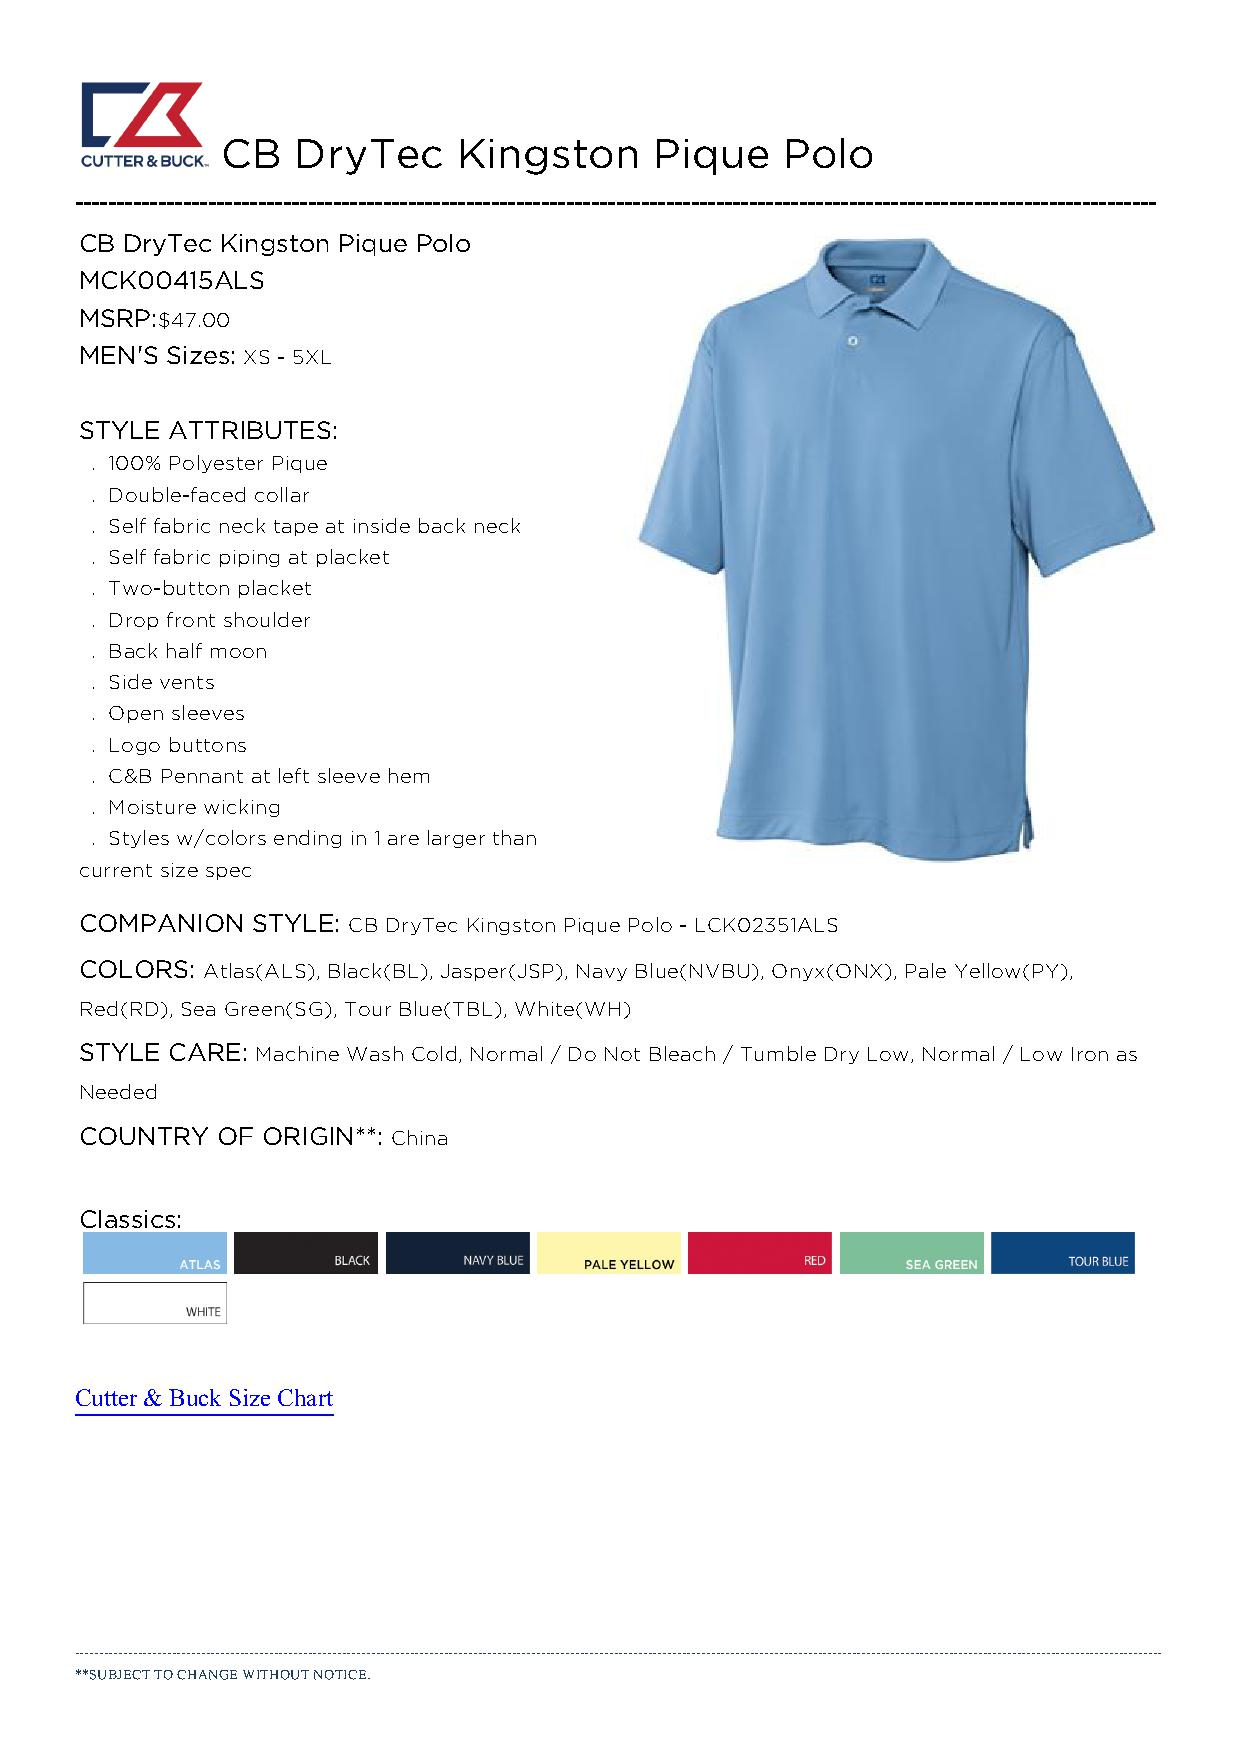 Cutter buck mck00415 men 39 s cb drytec kingston pique for Cutter buck polo shirt size chart